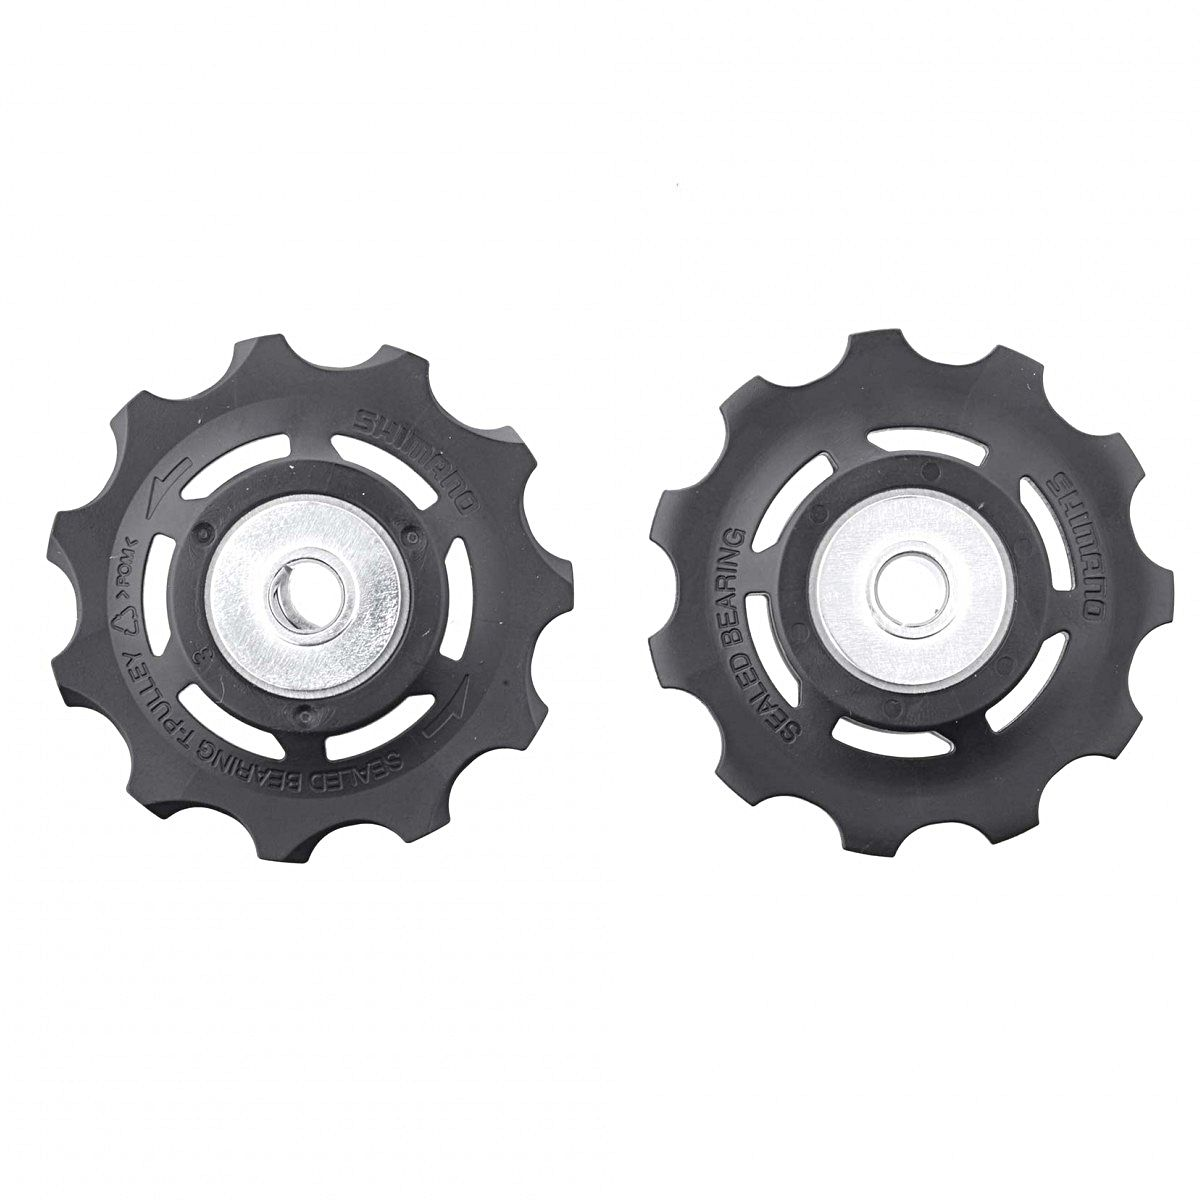 ULTEGRA 11-SPEED JOCKEY WHEELS